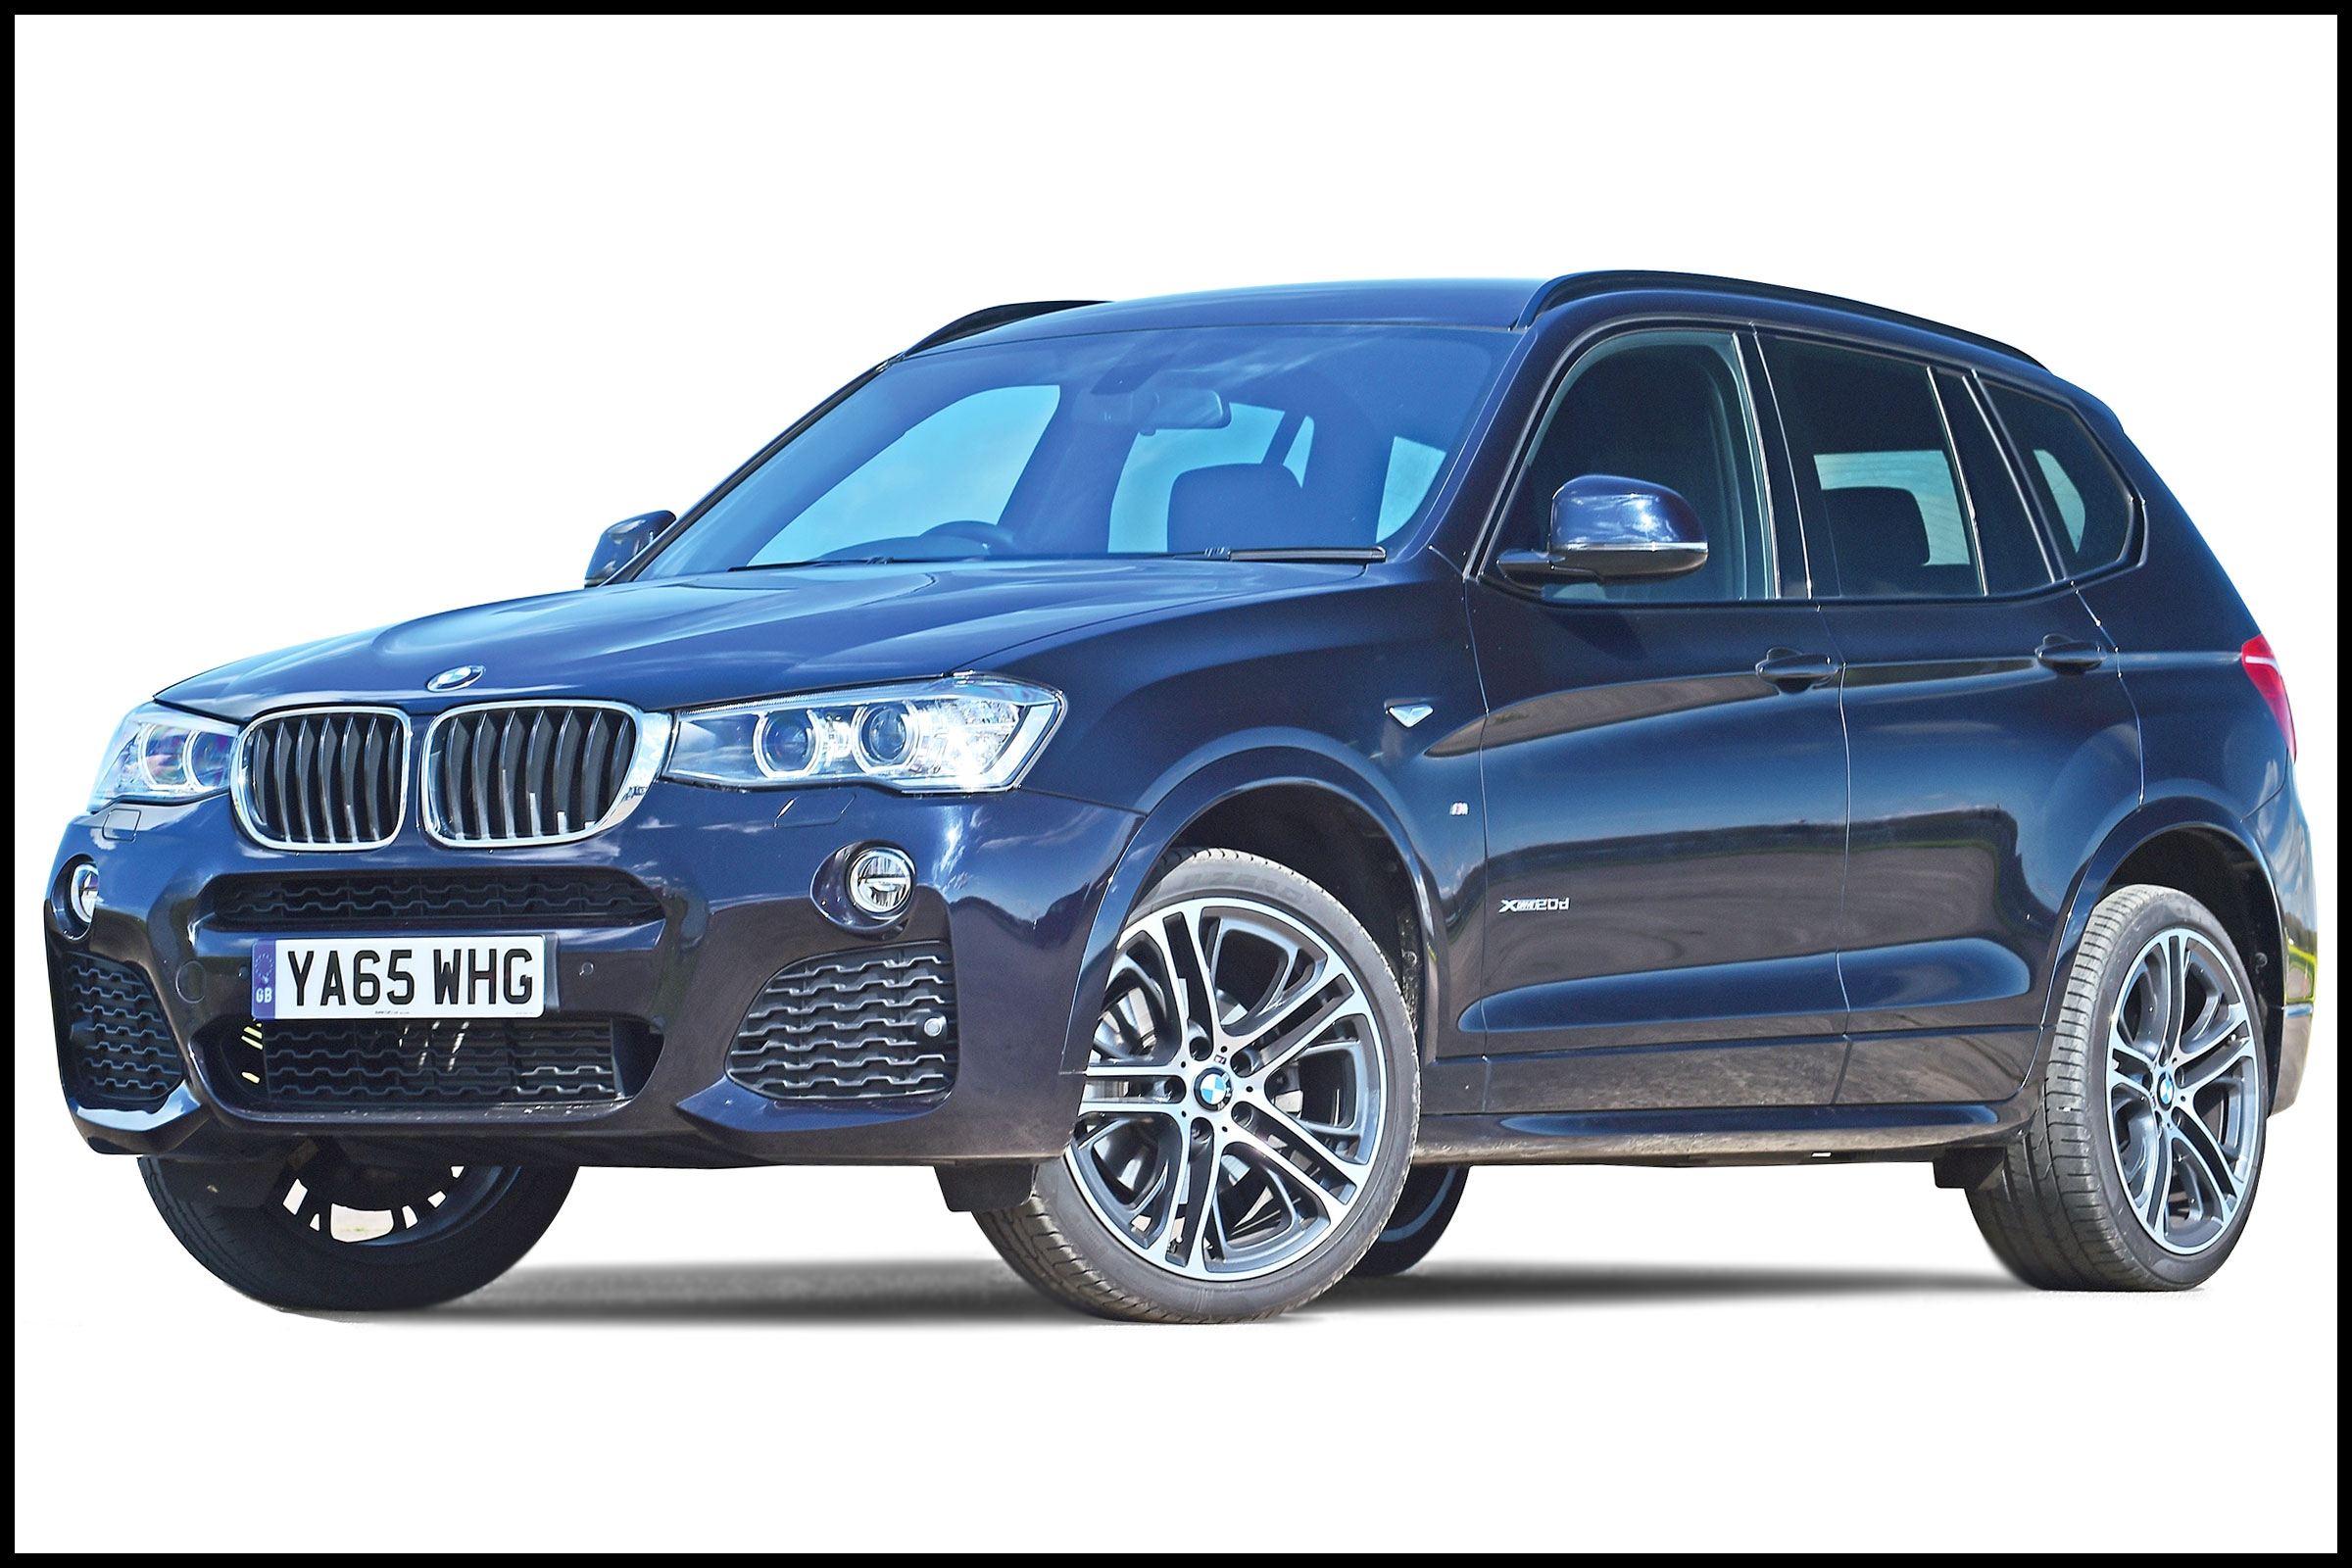 BMW X3 SUV 2010 2017 owner reviews MPG problems reliability performance